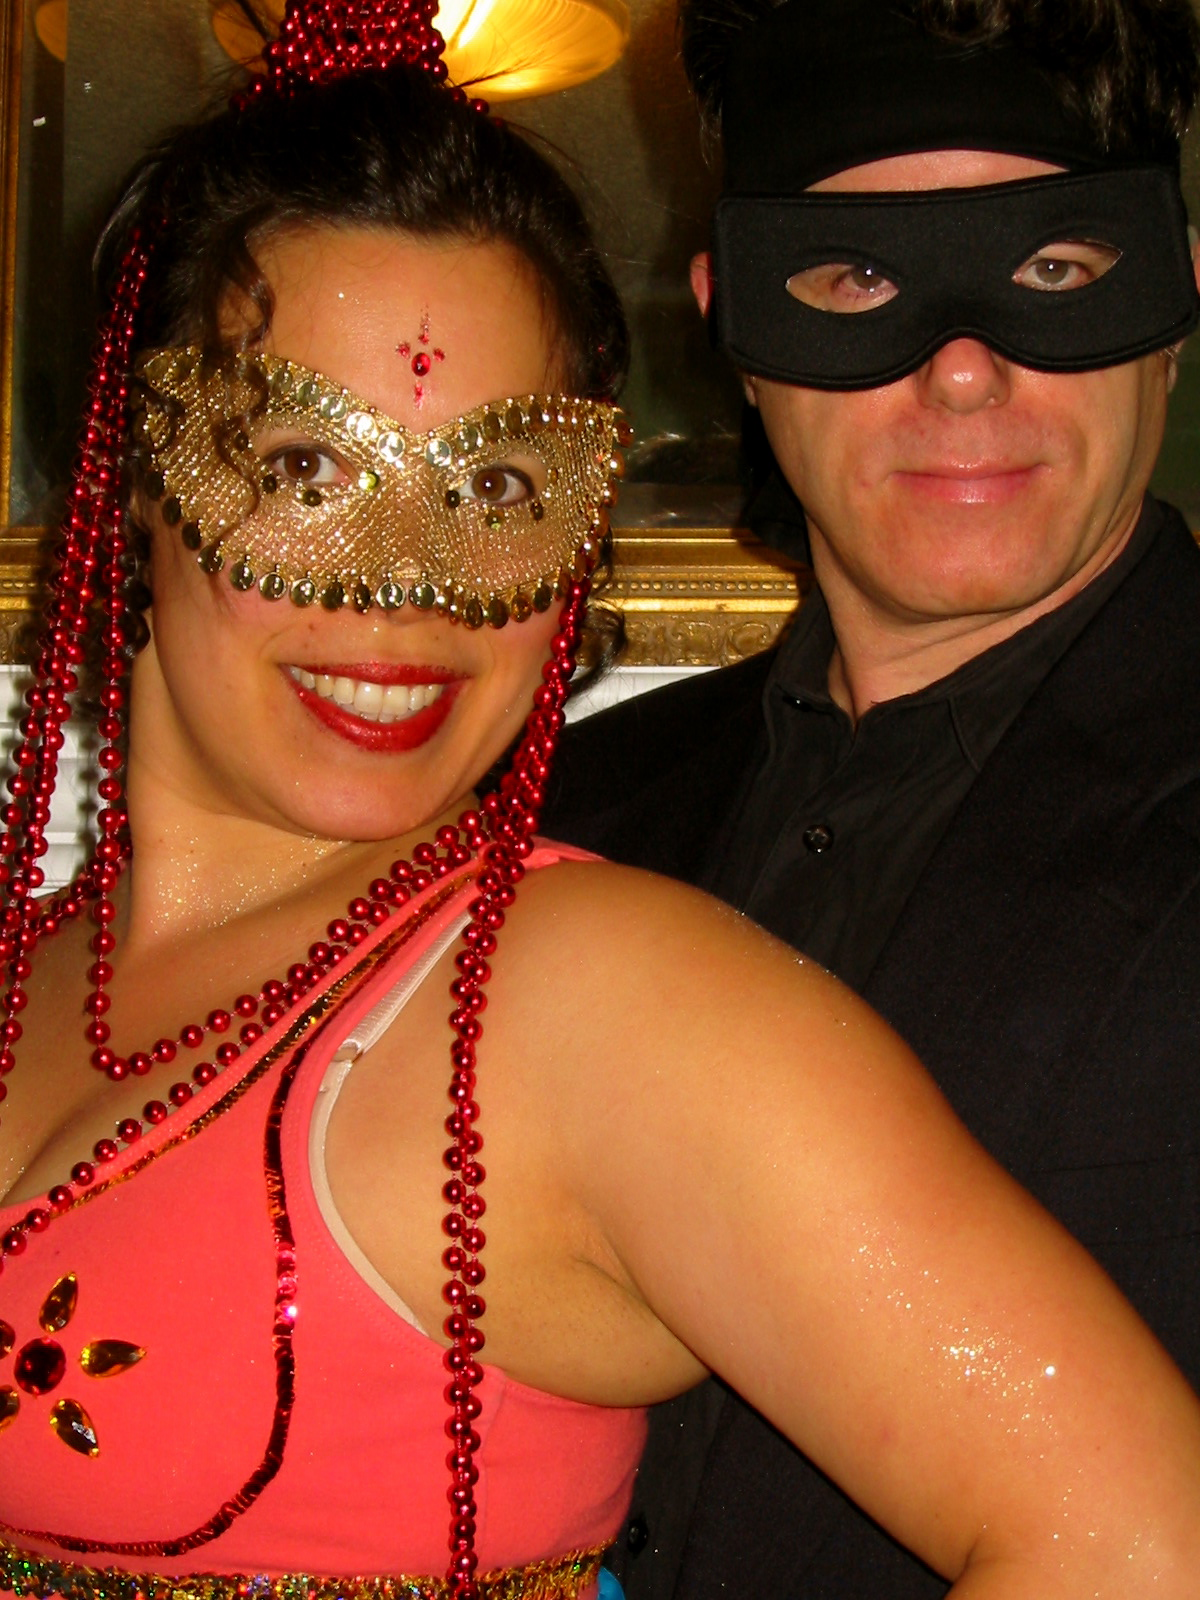 Kristina & William @ Mardi Gras, CTC Seattle, Sunday 6 February 2005.